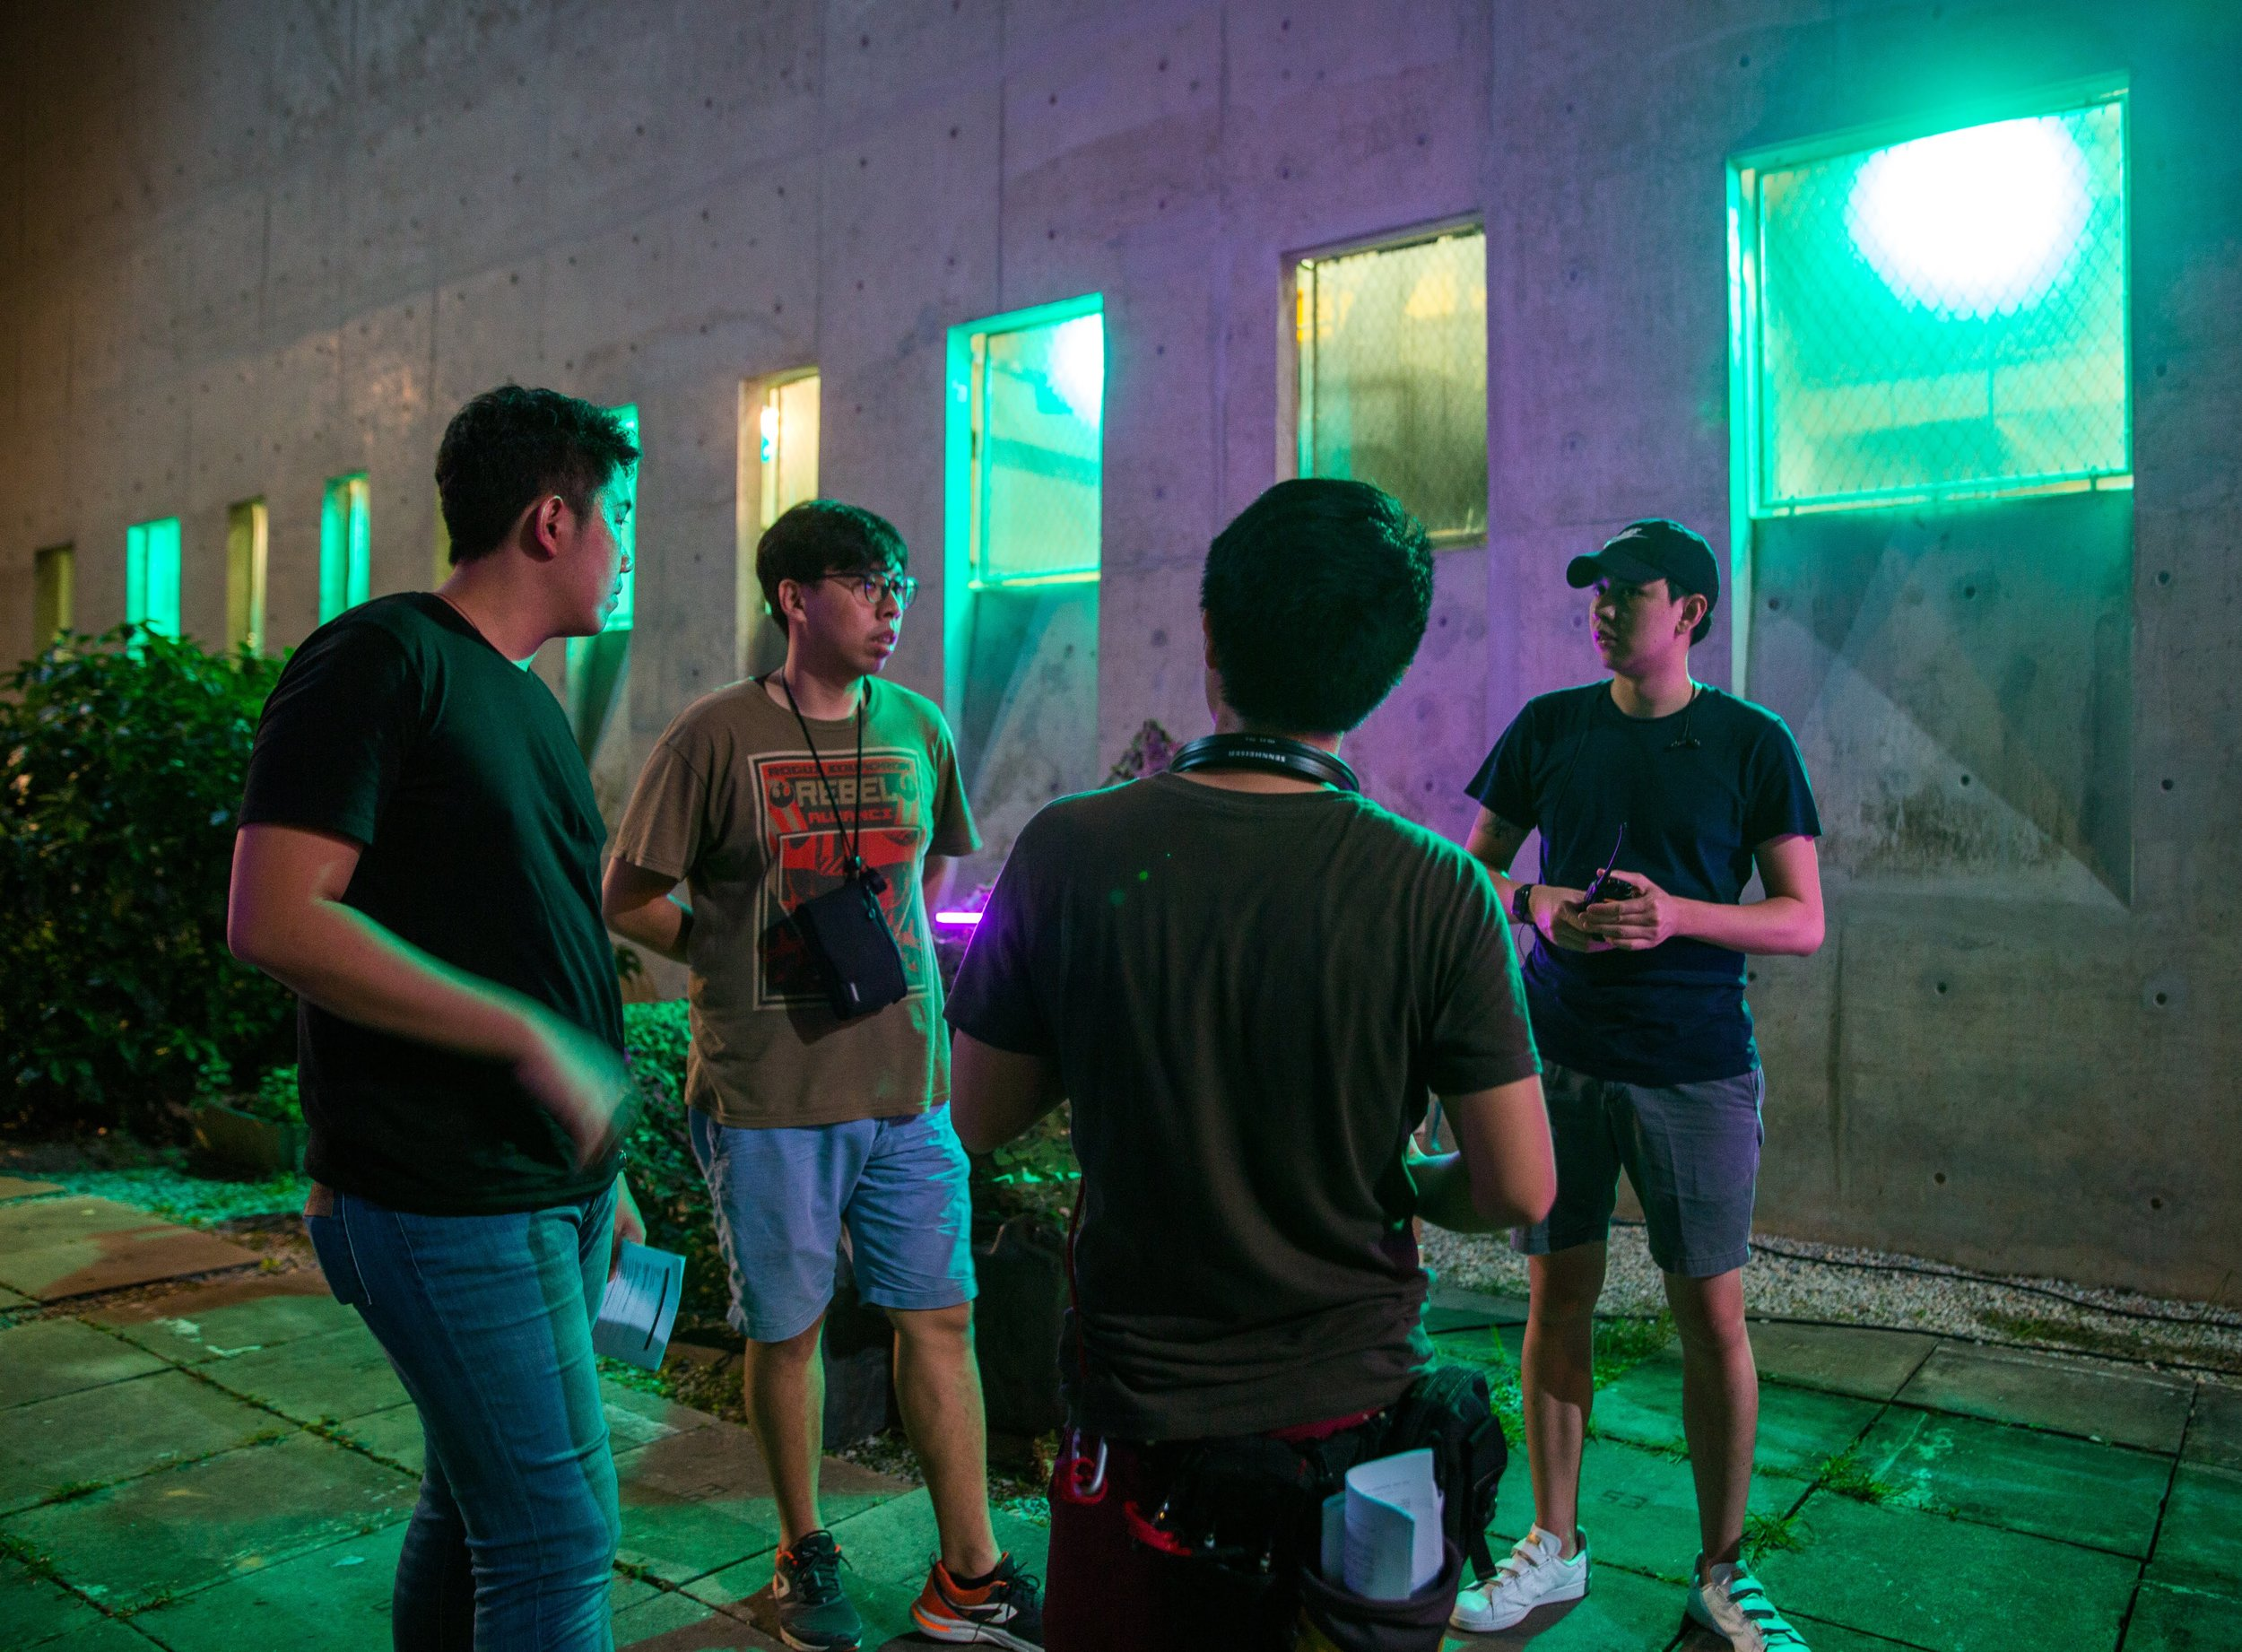 Mengchee Chiang (Director of Photography), Nicholas Lo (Director),  Roy Paulinus  (Assistant Director) and Chong Shijie (VFX advisor, CraveFX) discussing a challenging shot.